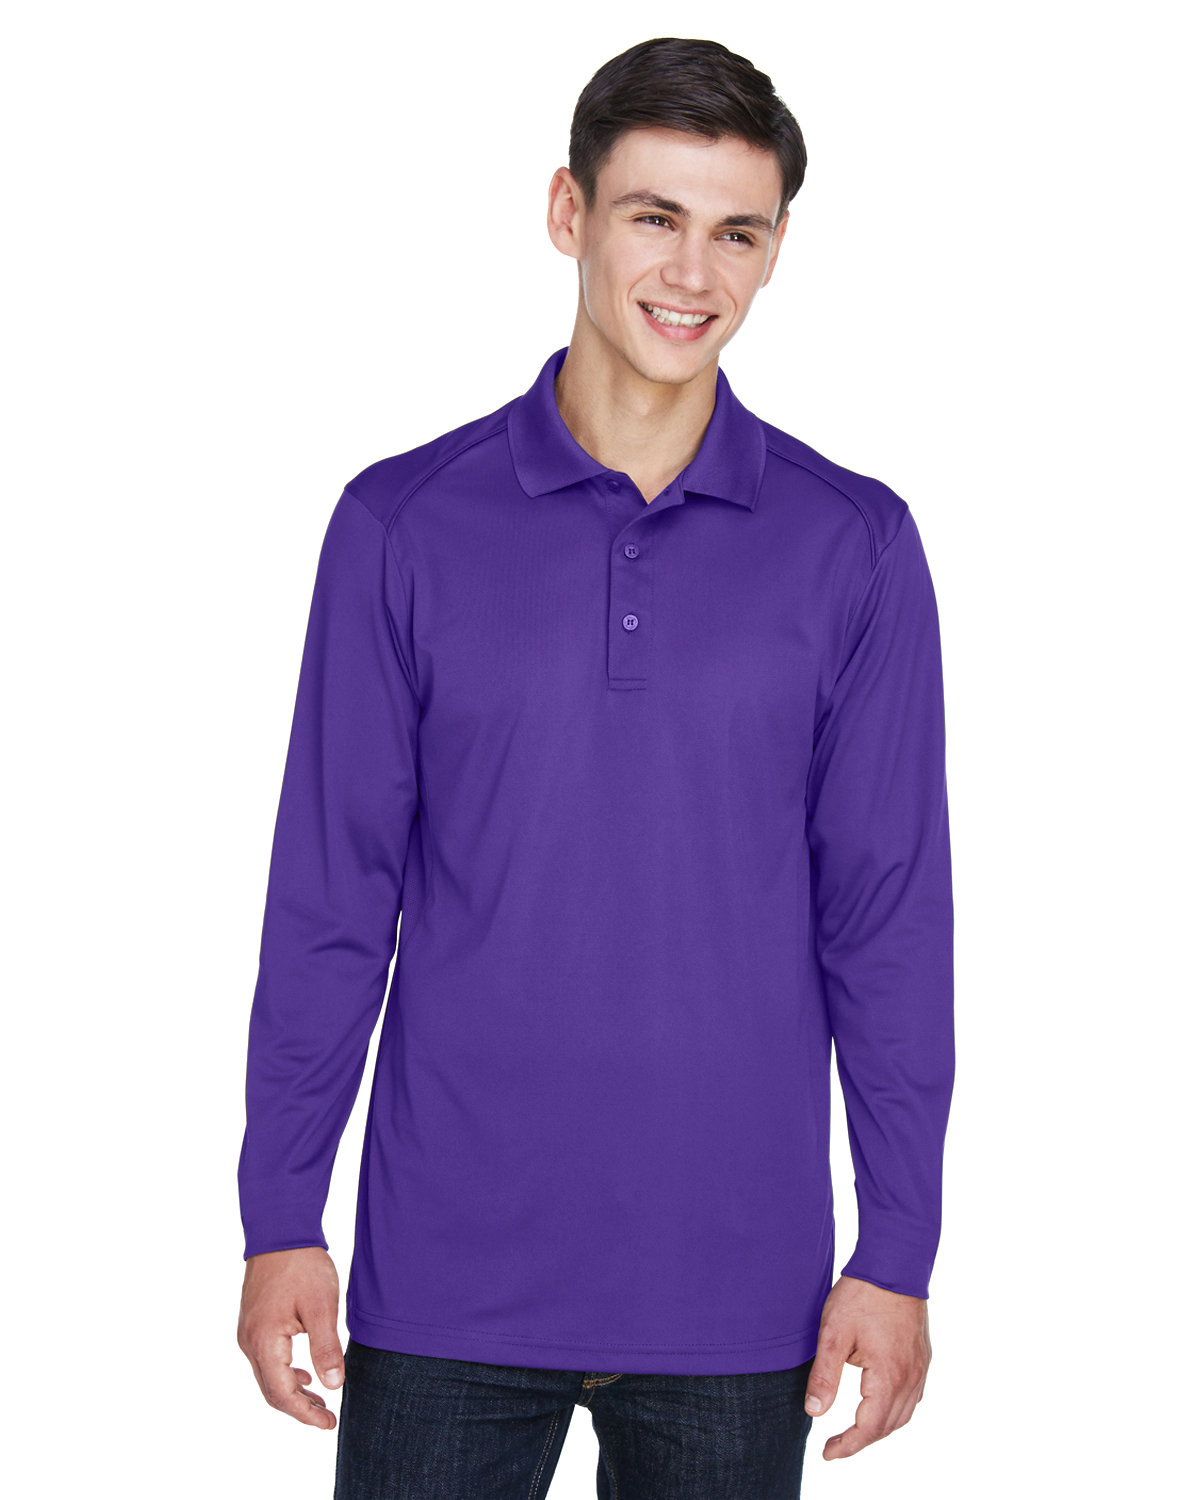 Extreme Men's Eperformance™ Snag Protection Long-Sleeve Polo CAMPUS PURPLE